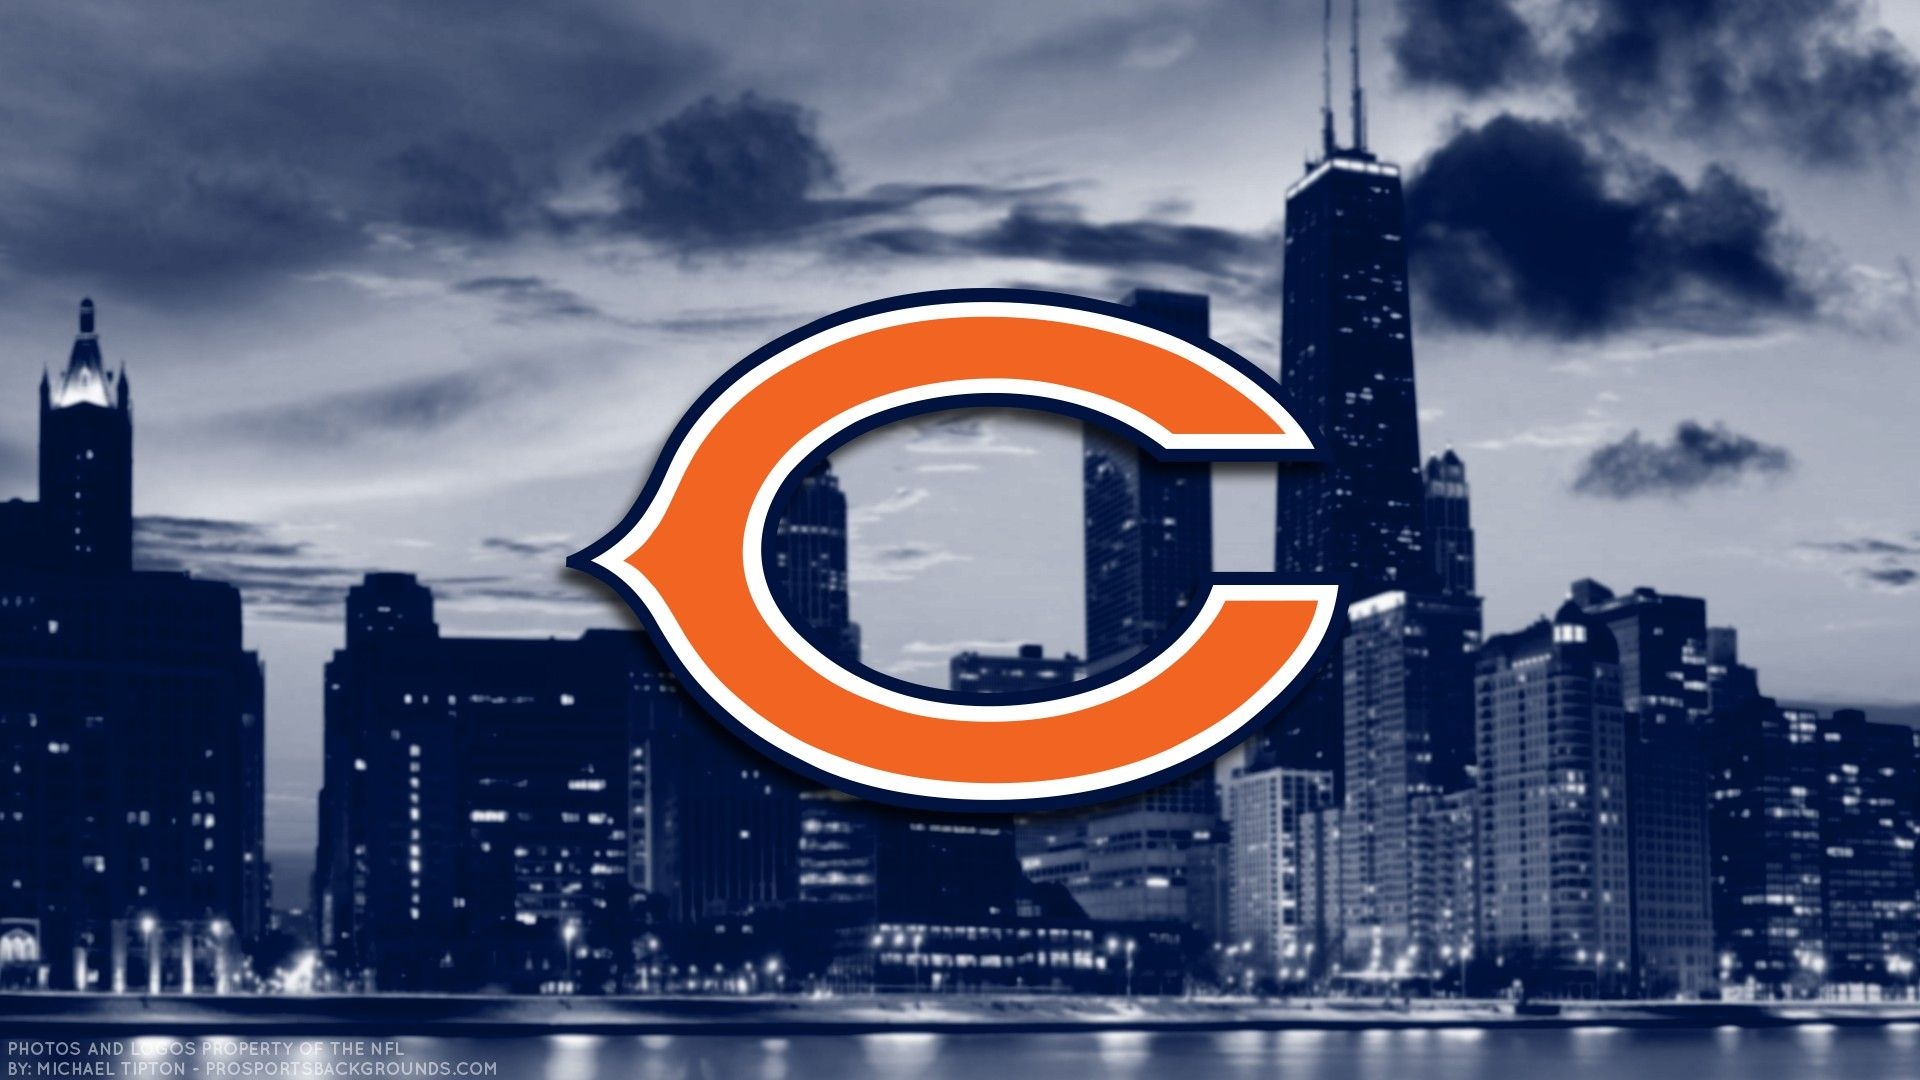 Chicago Bears NFL HD Wallpapers 2021 NFL Football Wallpapers 1920x1080